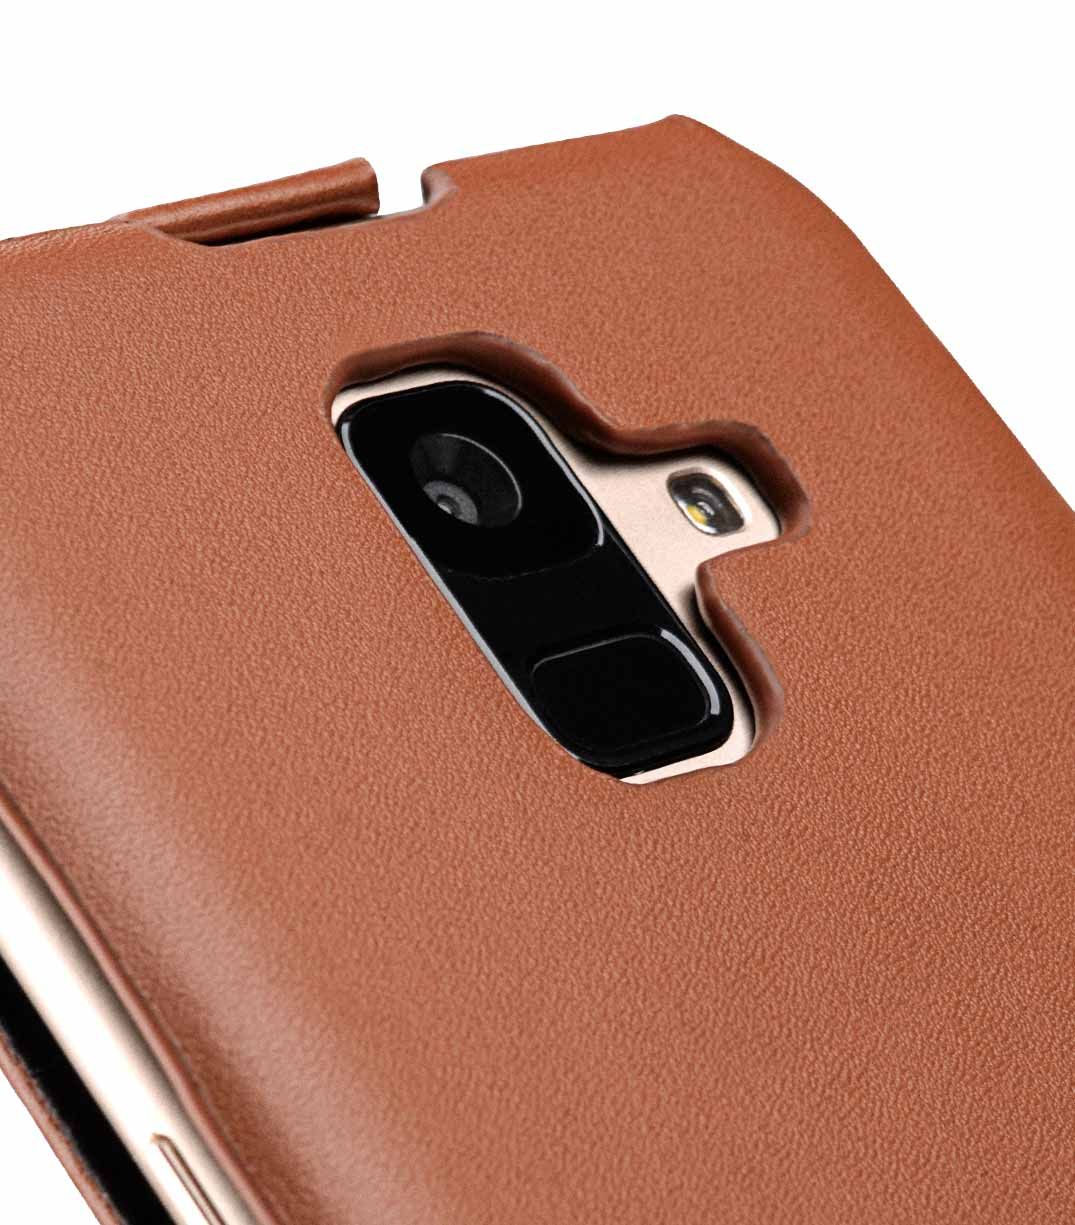 Melkco Premium Leather Case for Samsung Galaxy A6 (2018) - Jacka Type (Brown CH)